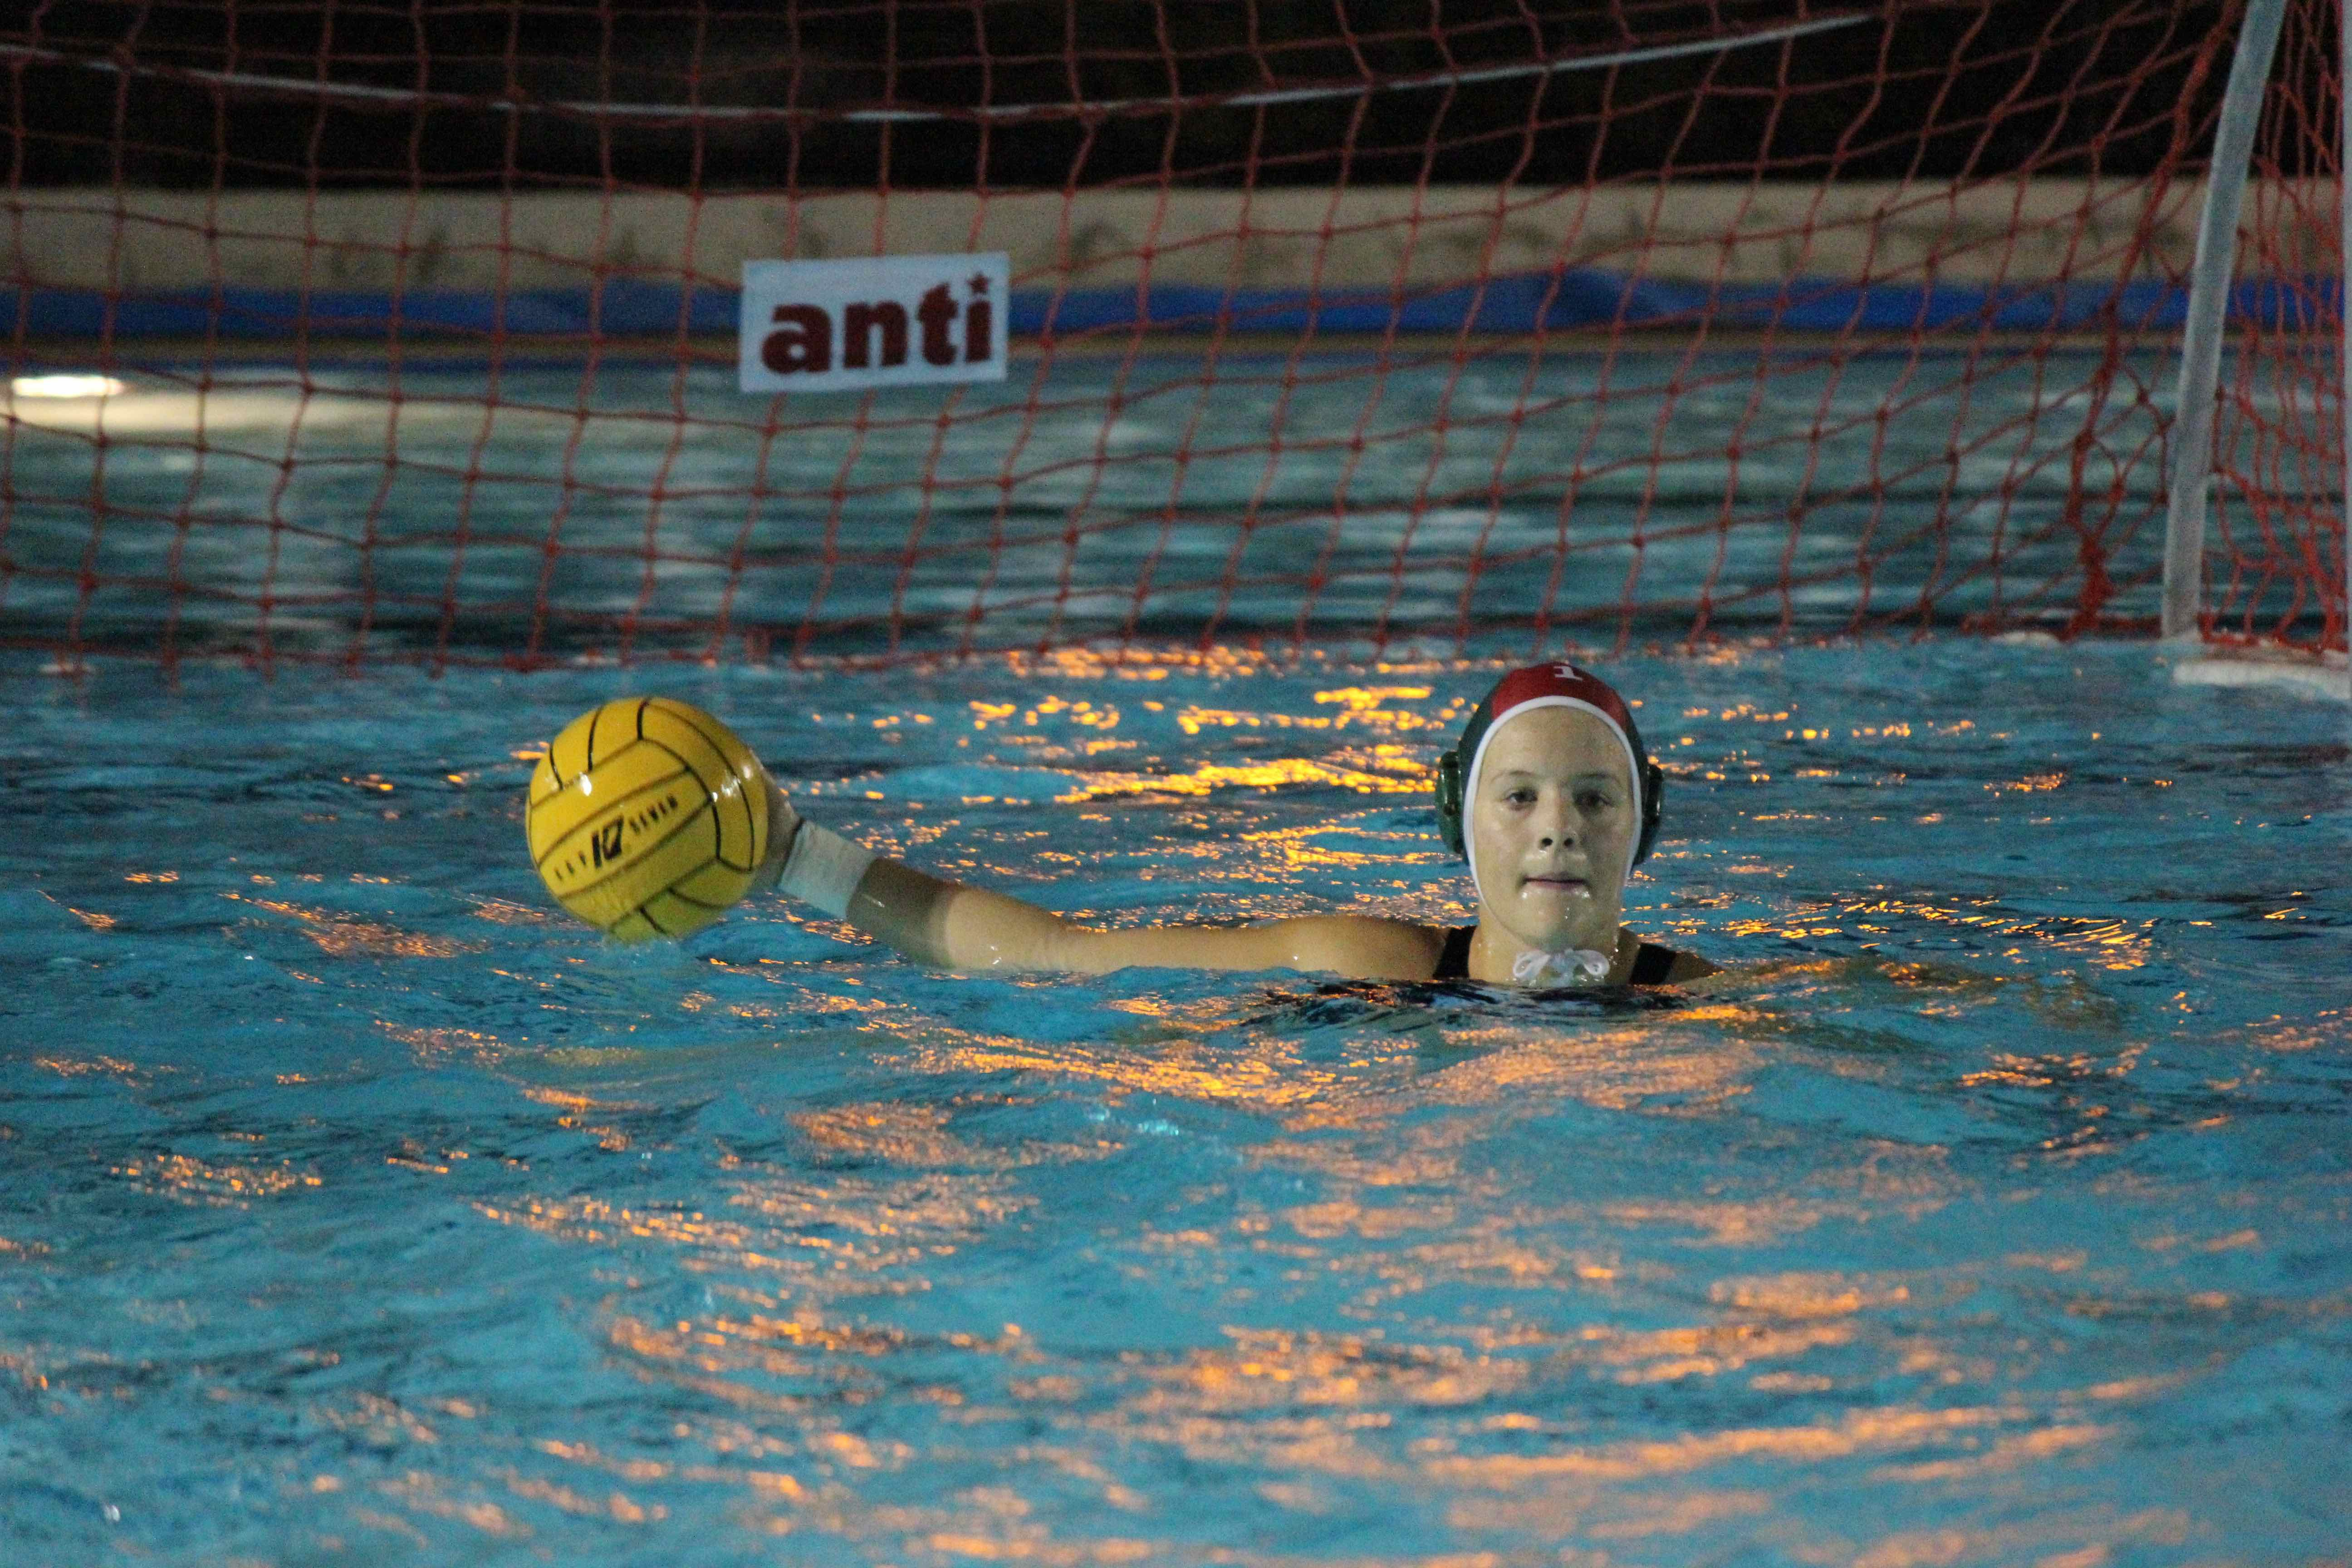 Senior Helena Dworak prepares to throw the ball during the varsity girls water polo game. The Eagles lost the match 1-10.